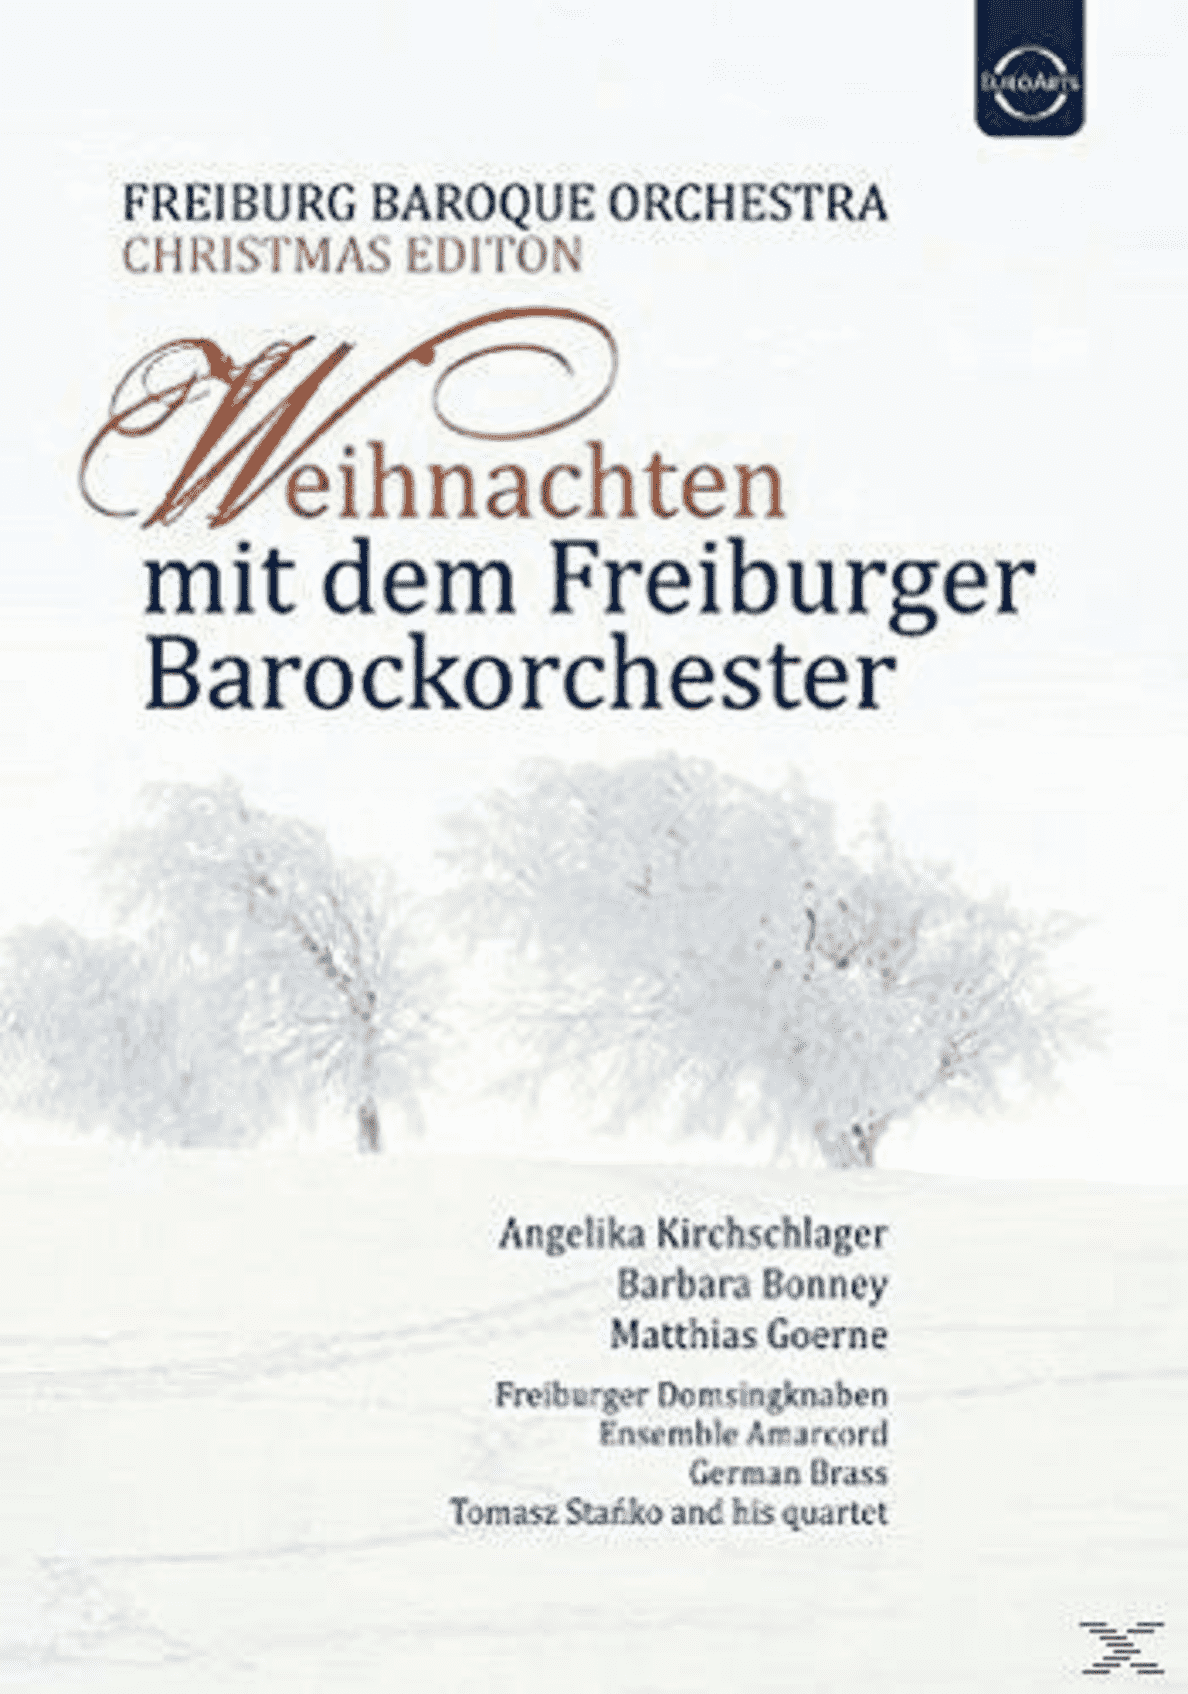 Angelika Kirchschlager, Barbara Bonney, Matthias Goerne, Freiburg Baroque Orchestra, Freiburger Domsingknaben, Ensemble Amarcord, German Brass, Tomasz Stańko And His Quartet - Weihnachten Mit Dem Freiburger Barockorch. - (DVD)